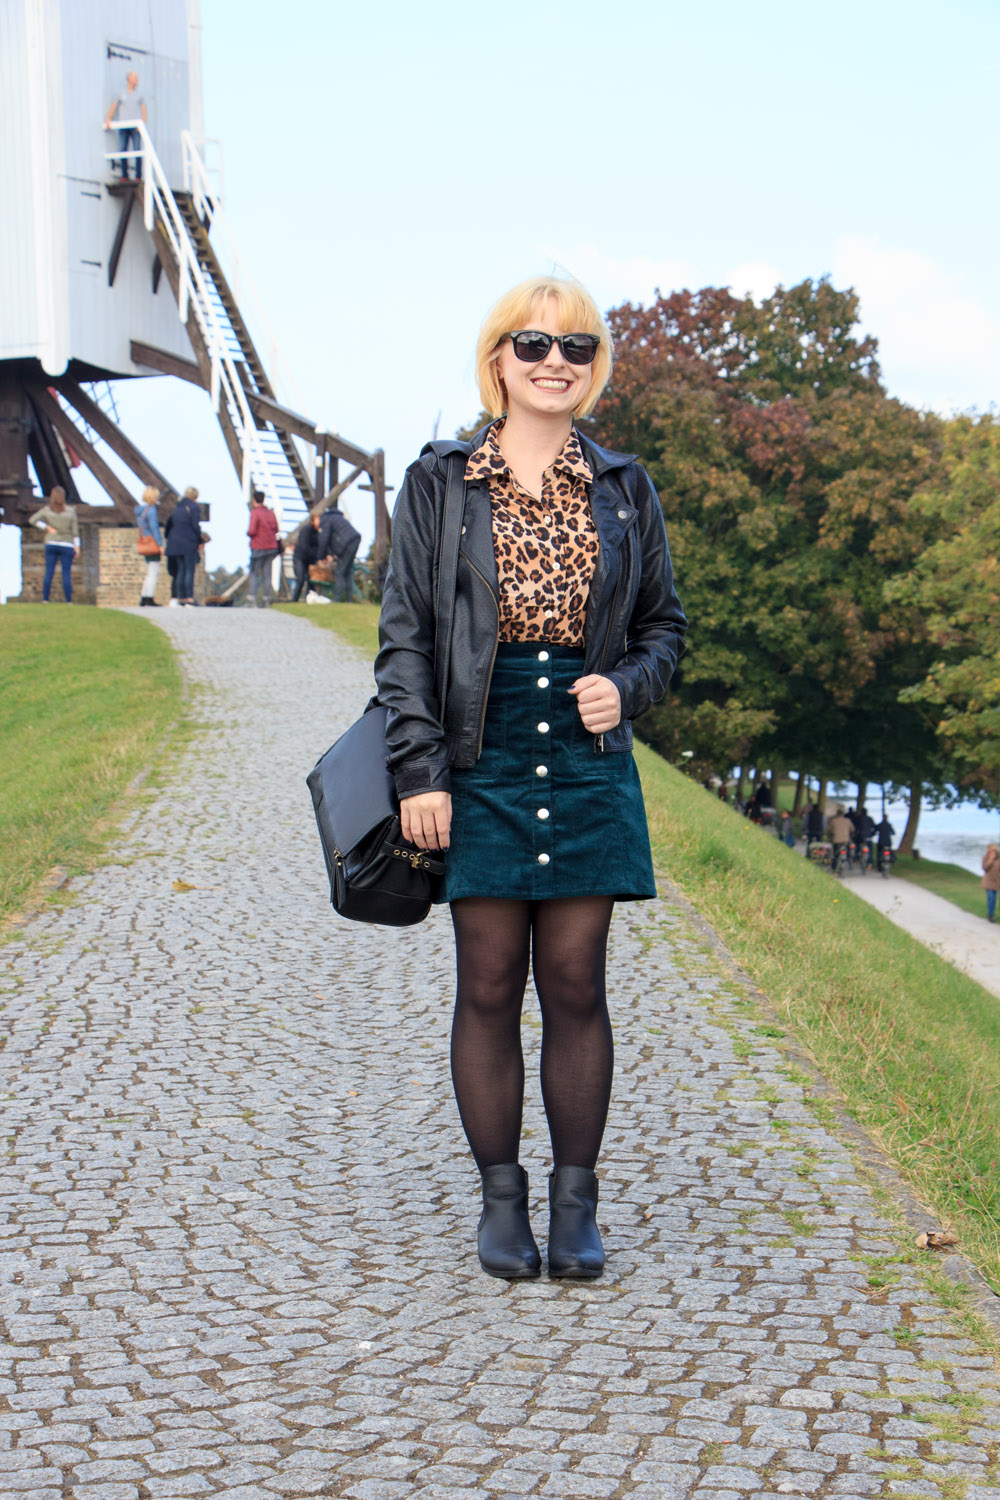 Silk Leopard Button Down, Faux Leather Coat, Green Button Down Skirt from H&M, Black Flat Boots